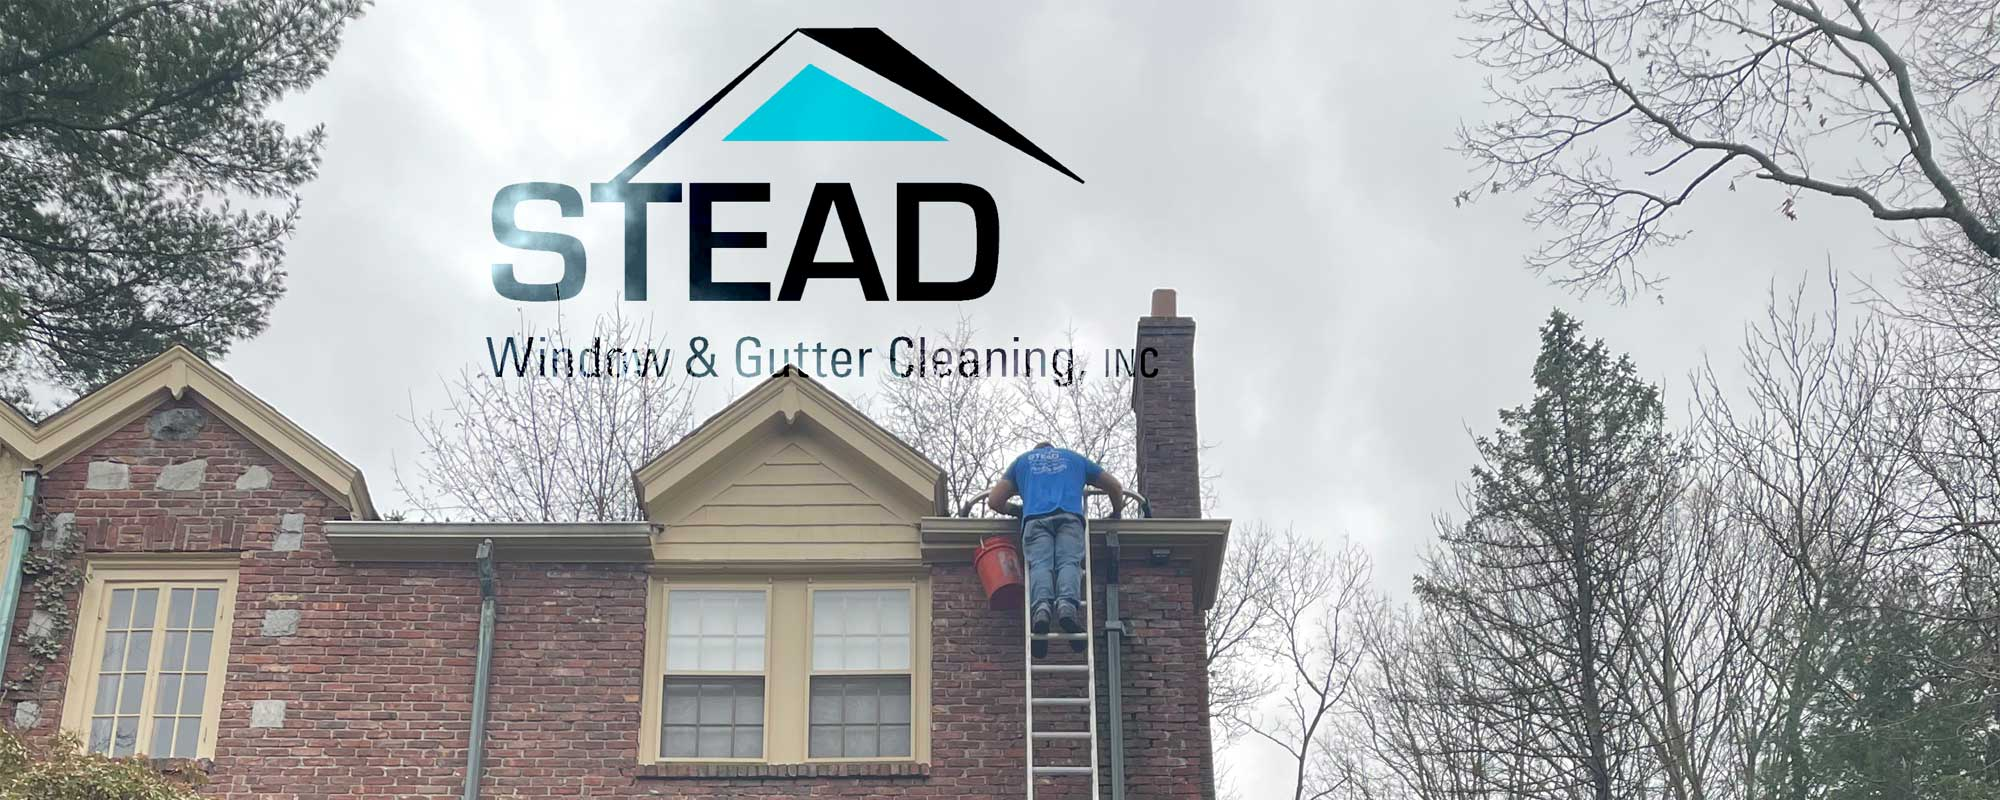 Stead Window Cleaning